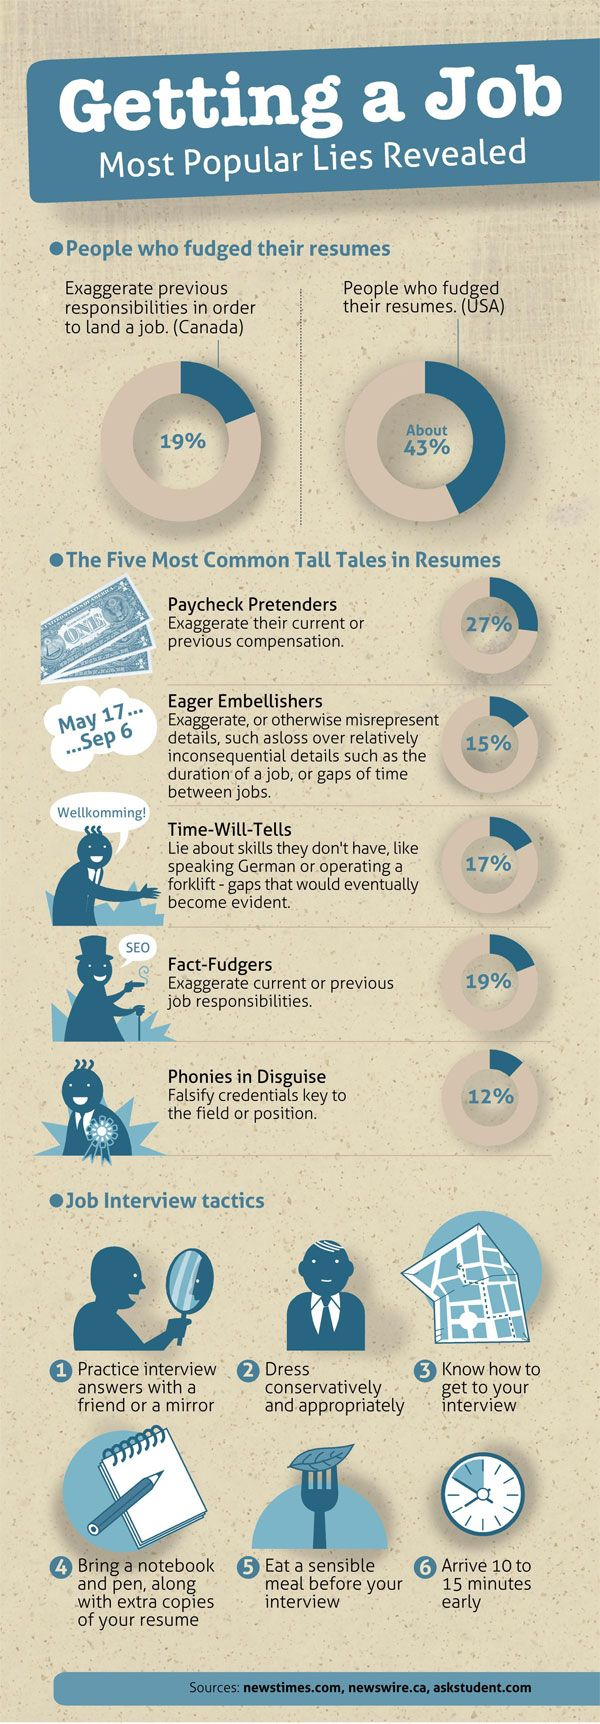 best images about career infographics interview getting a job most popular lies revealed infographic jobacle com blog